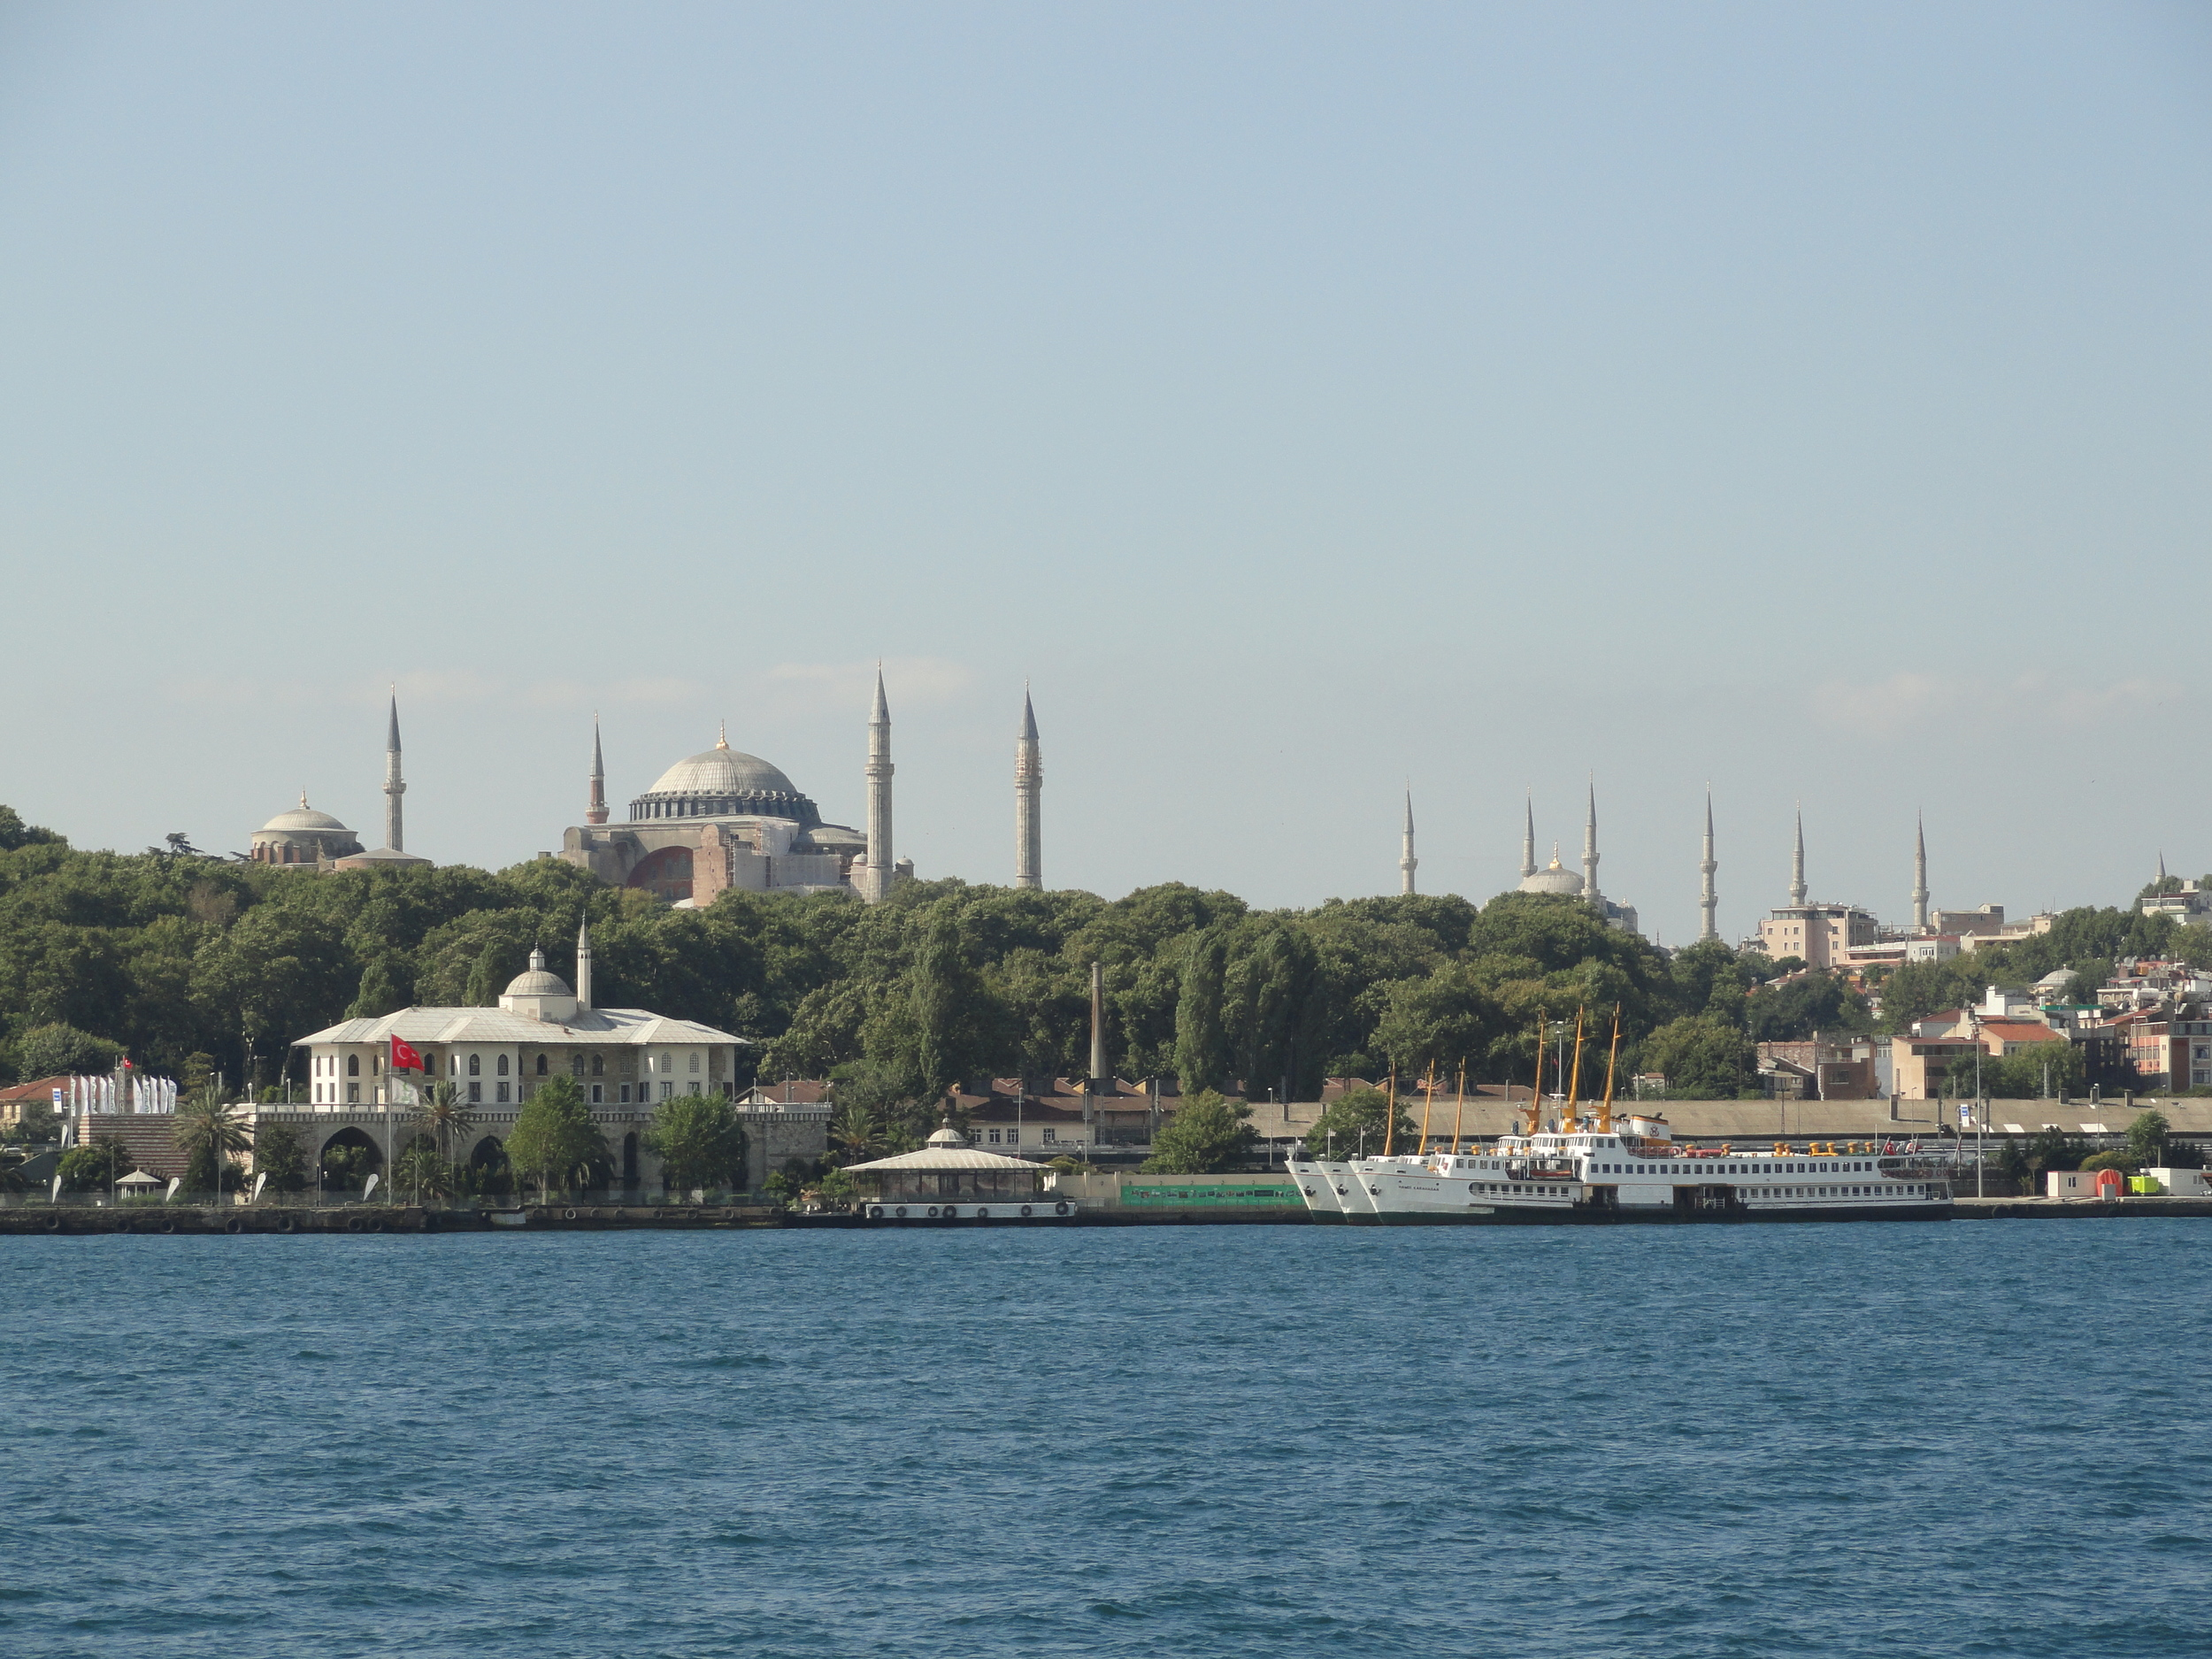 Aya Sofia & The Blue Mosque from the Bosphorous